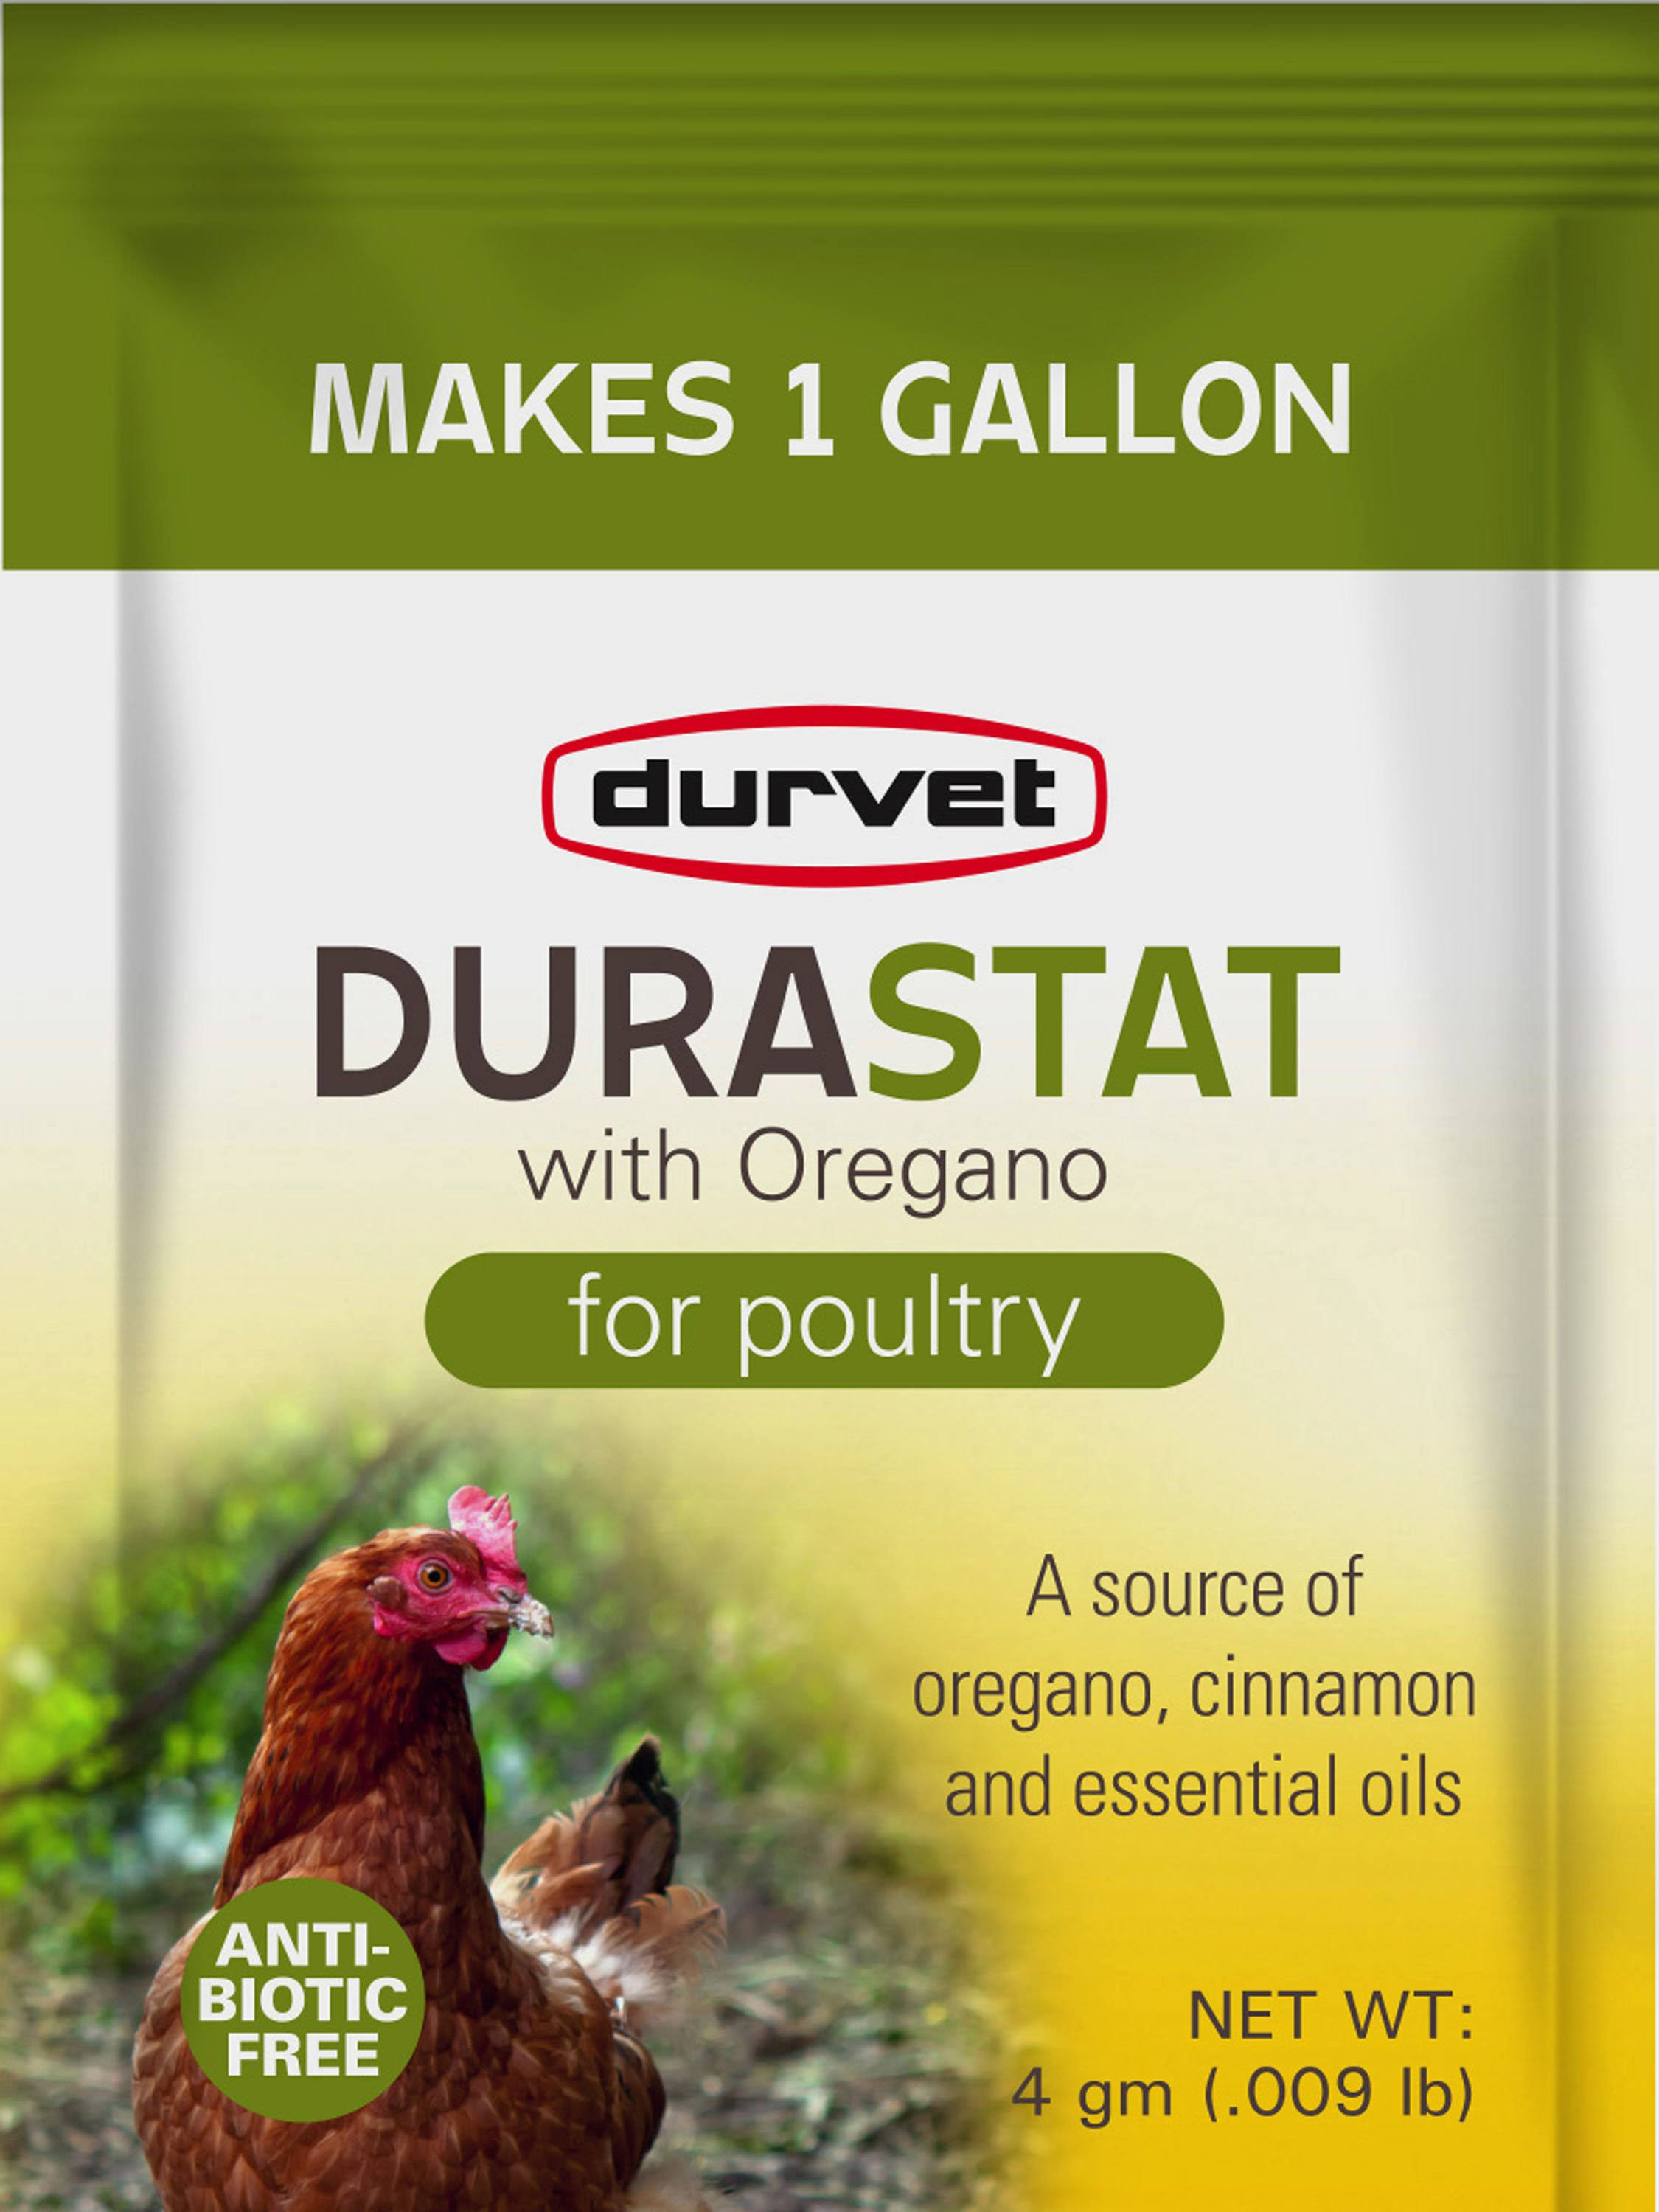 Durvet Durastat with Oregano for Poultry